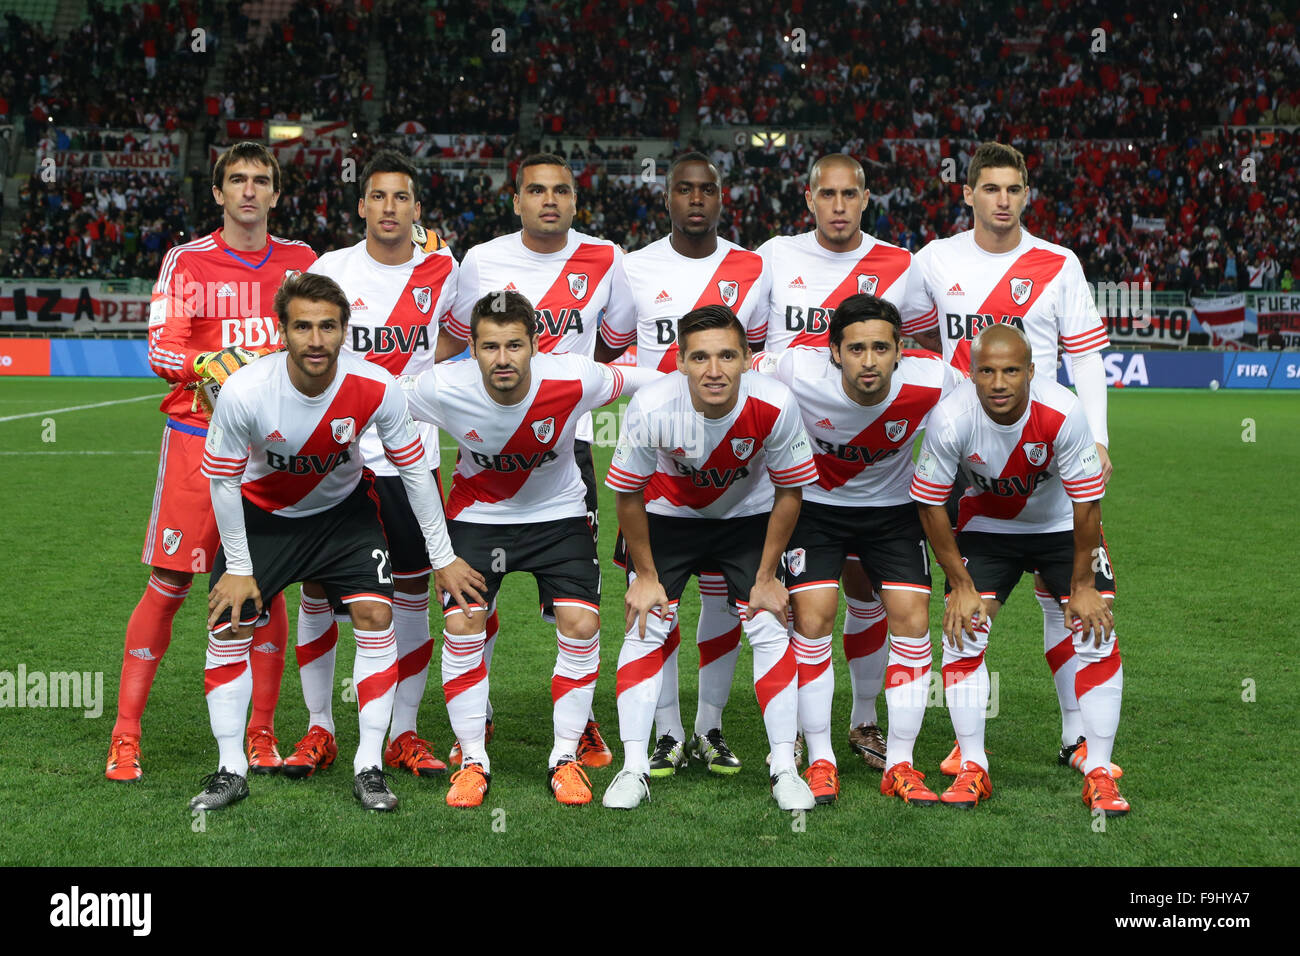 River Plate: River Plate Team Group Line-up (River Plate), DECEMBER 16